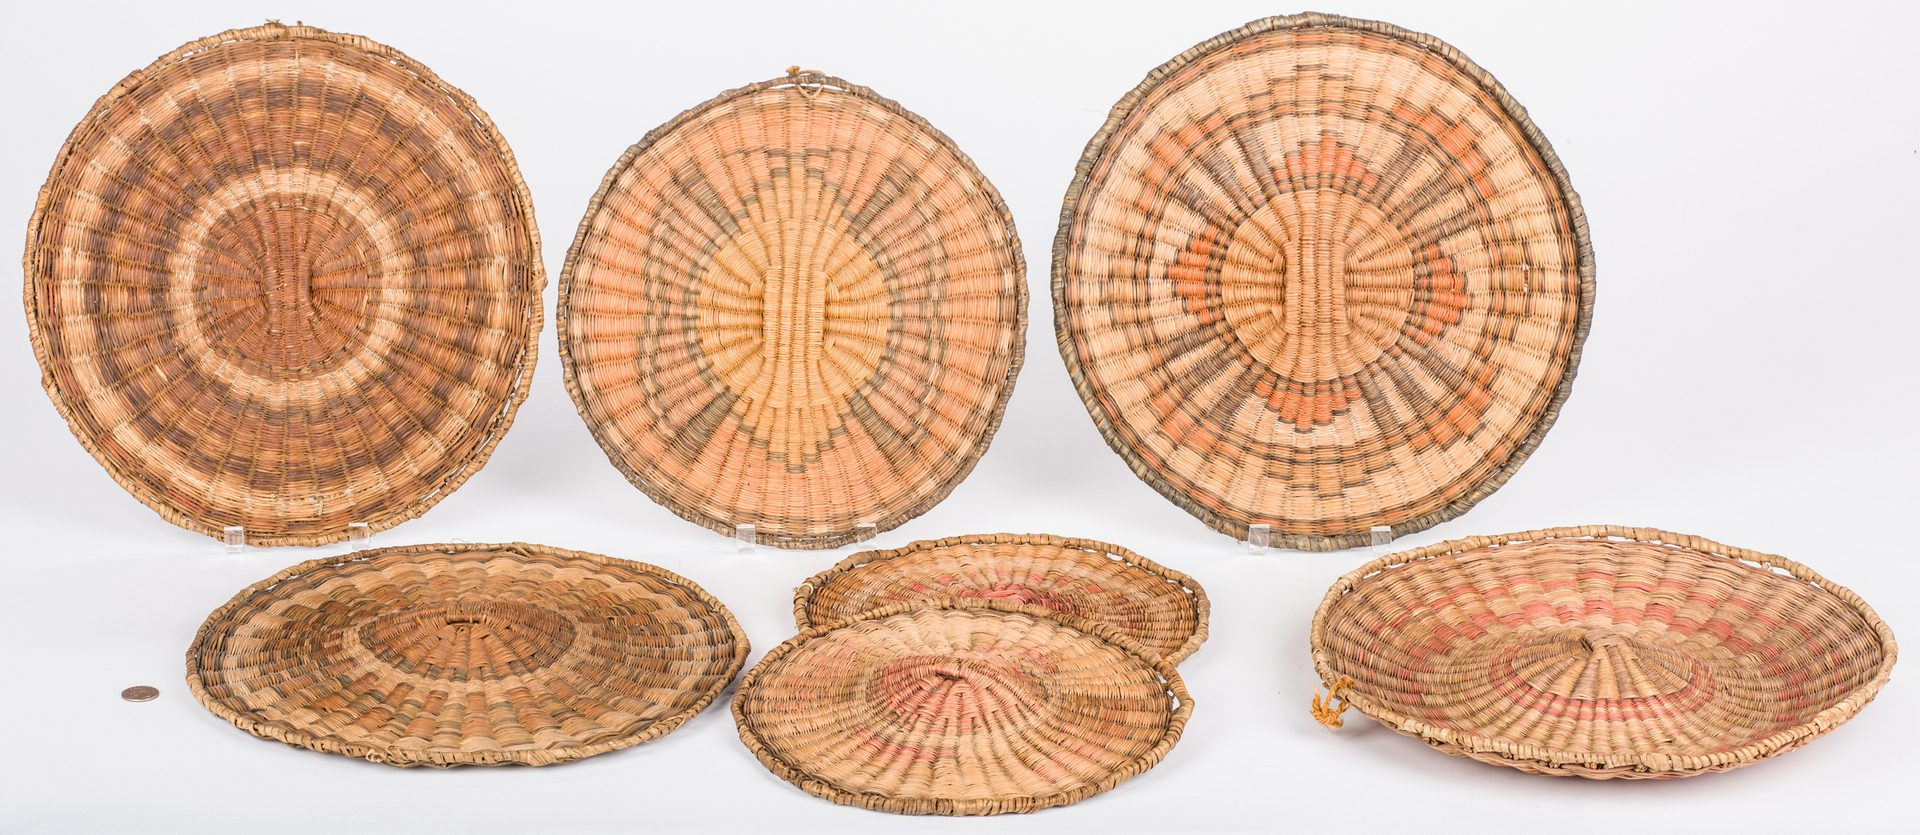 Lot 390: 7 Hopi Mesa Wicker Basket Plaques